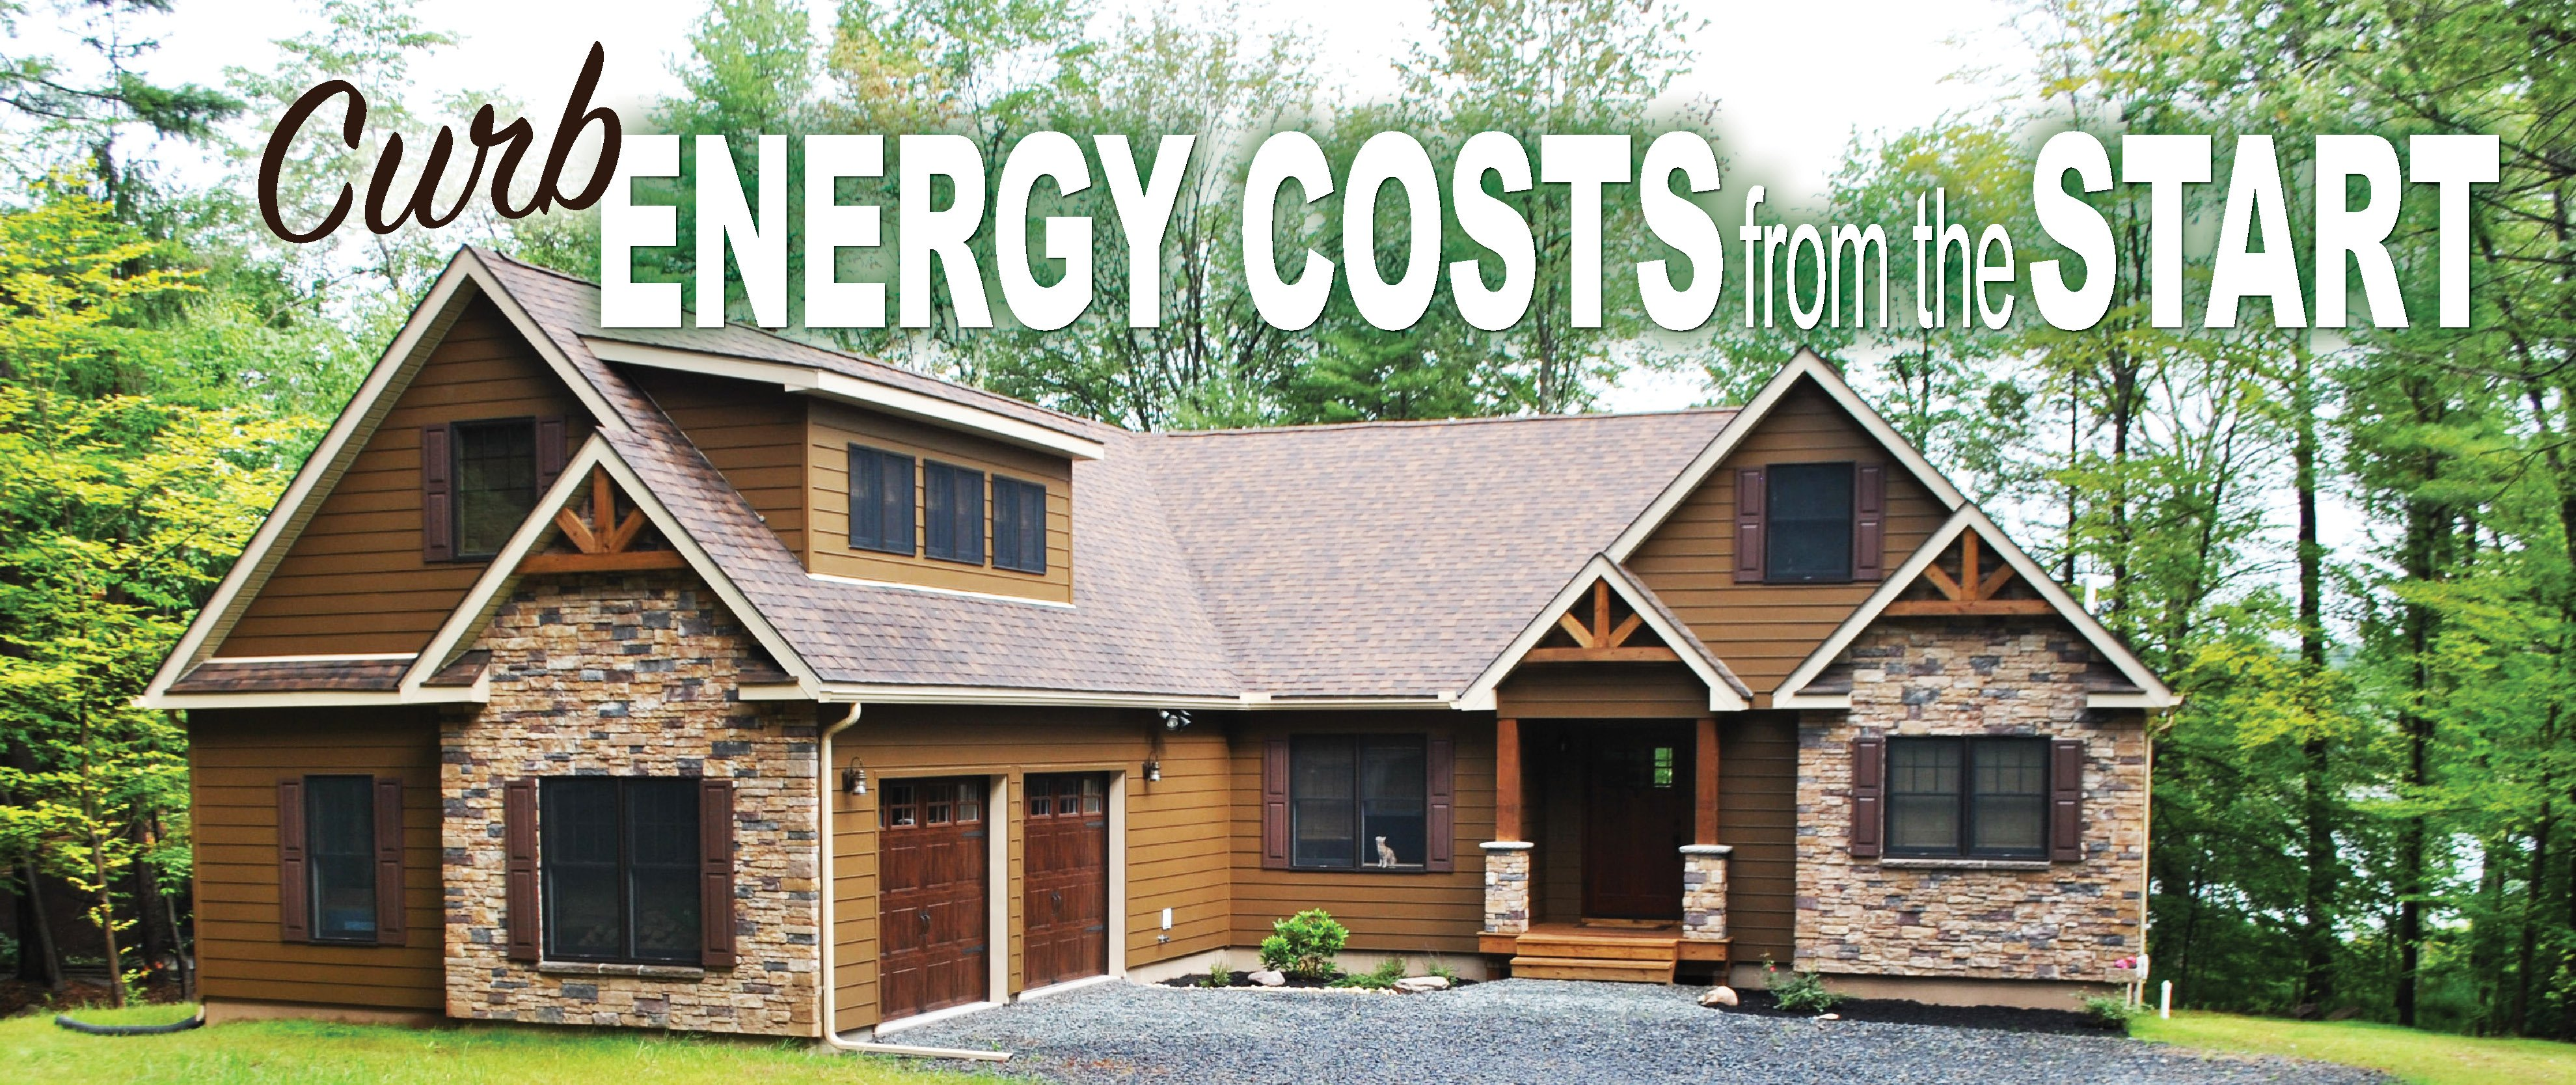 charming libertyhomes #5: save-energy-costs-from-the-start-liberty-homes